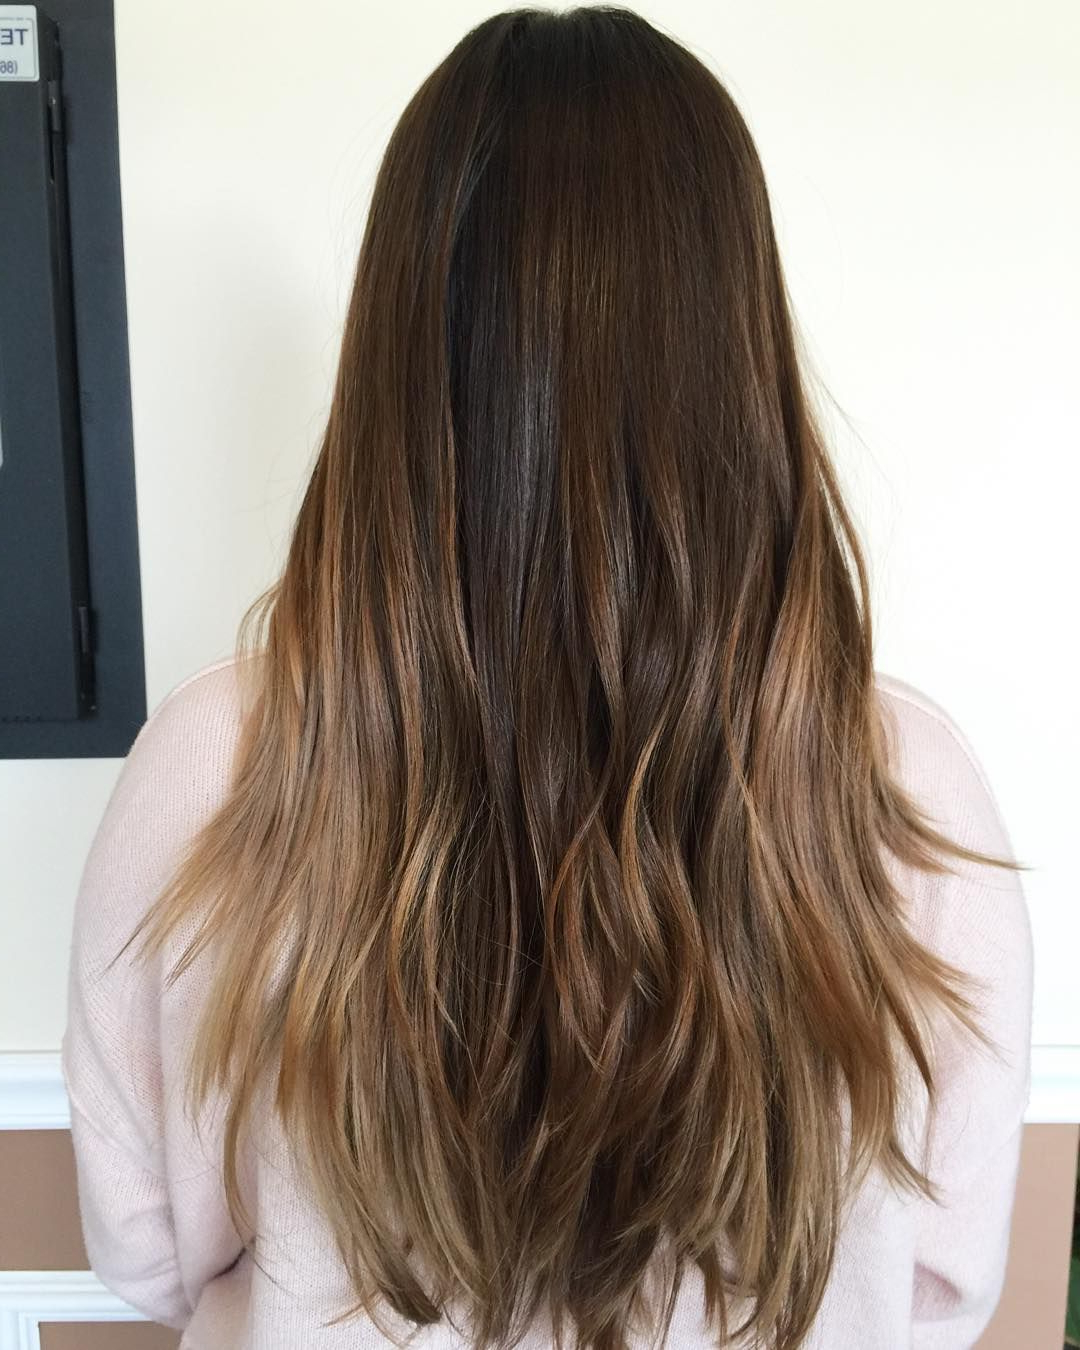 Most Up To Date Caramel Lob Hairstyles With Delicate Layers Intended For 60 Balayage Hair Color Ideas With Blonde, Brown, Caramel And Red (View 16 of 20)